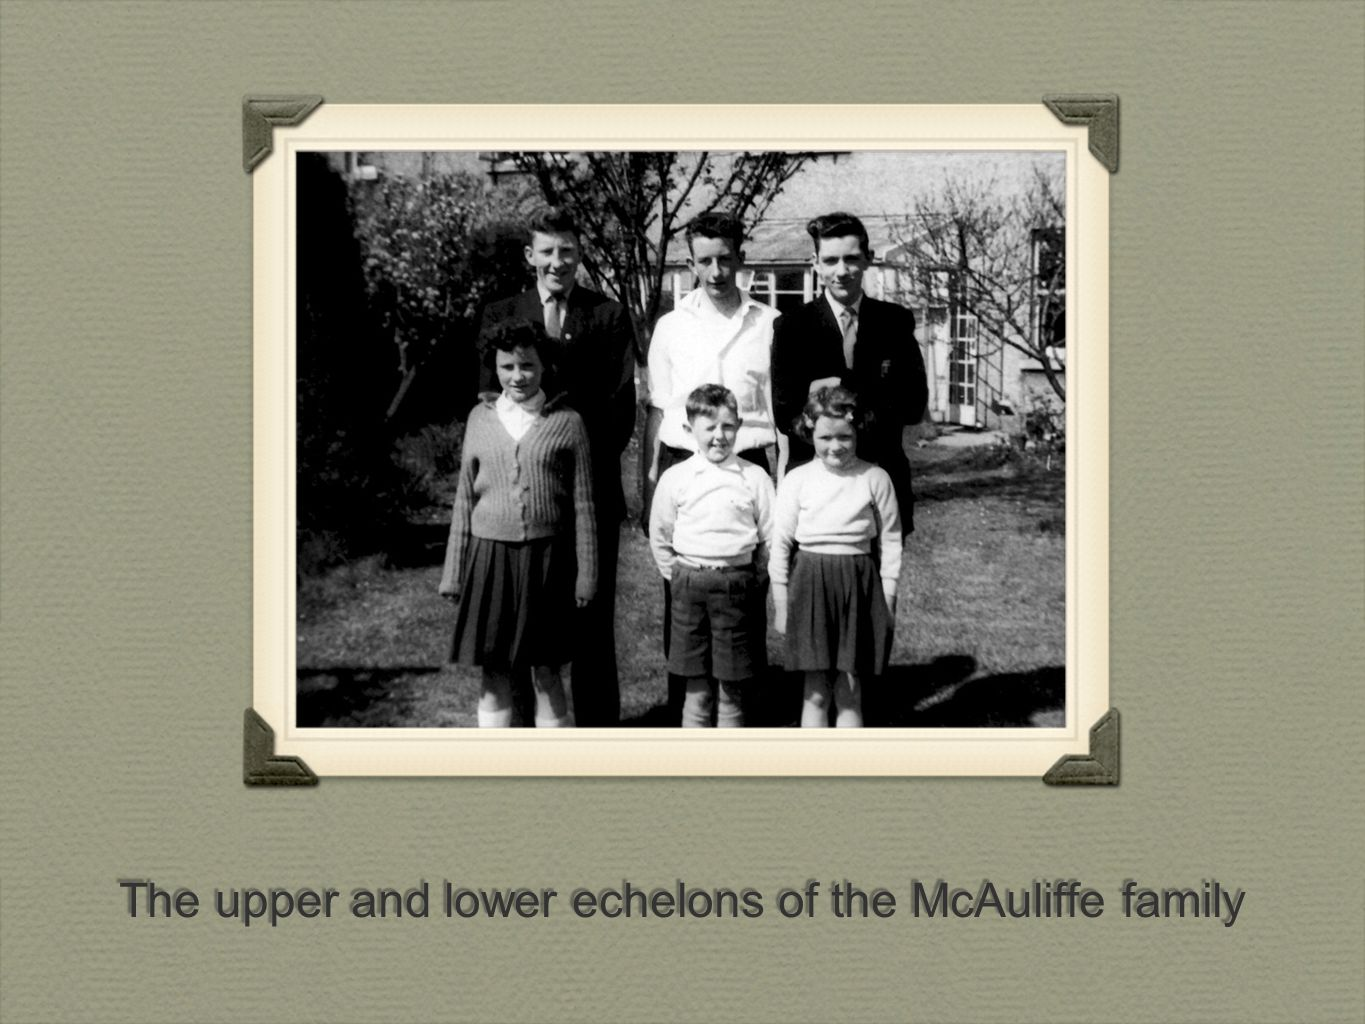 The upper and lower echelons of the McAuliffe family